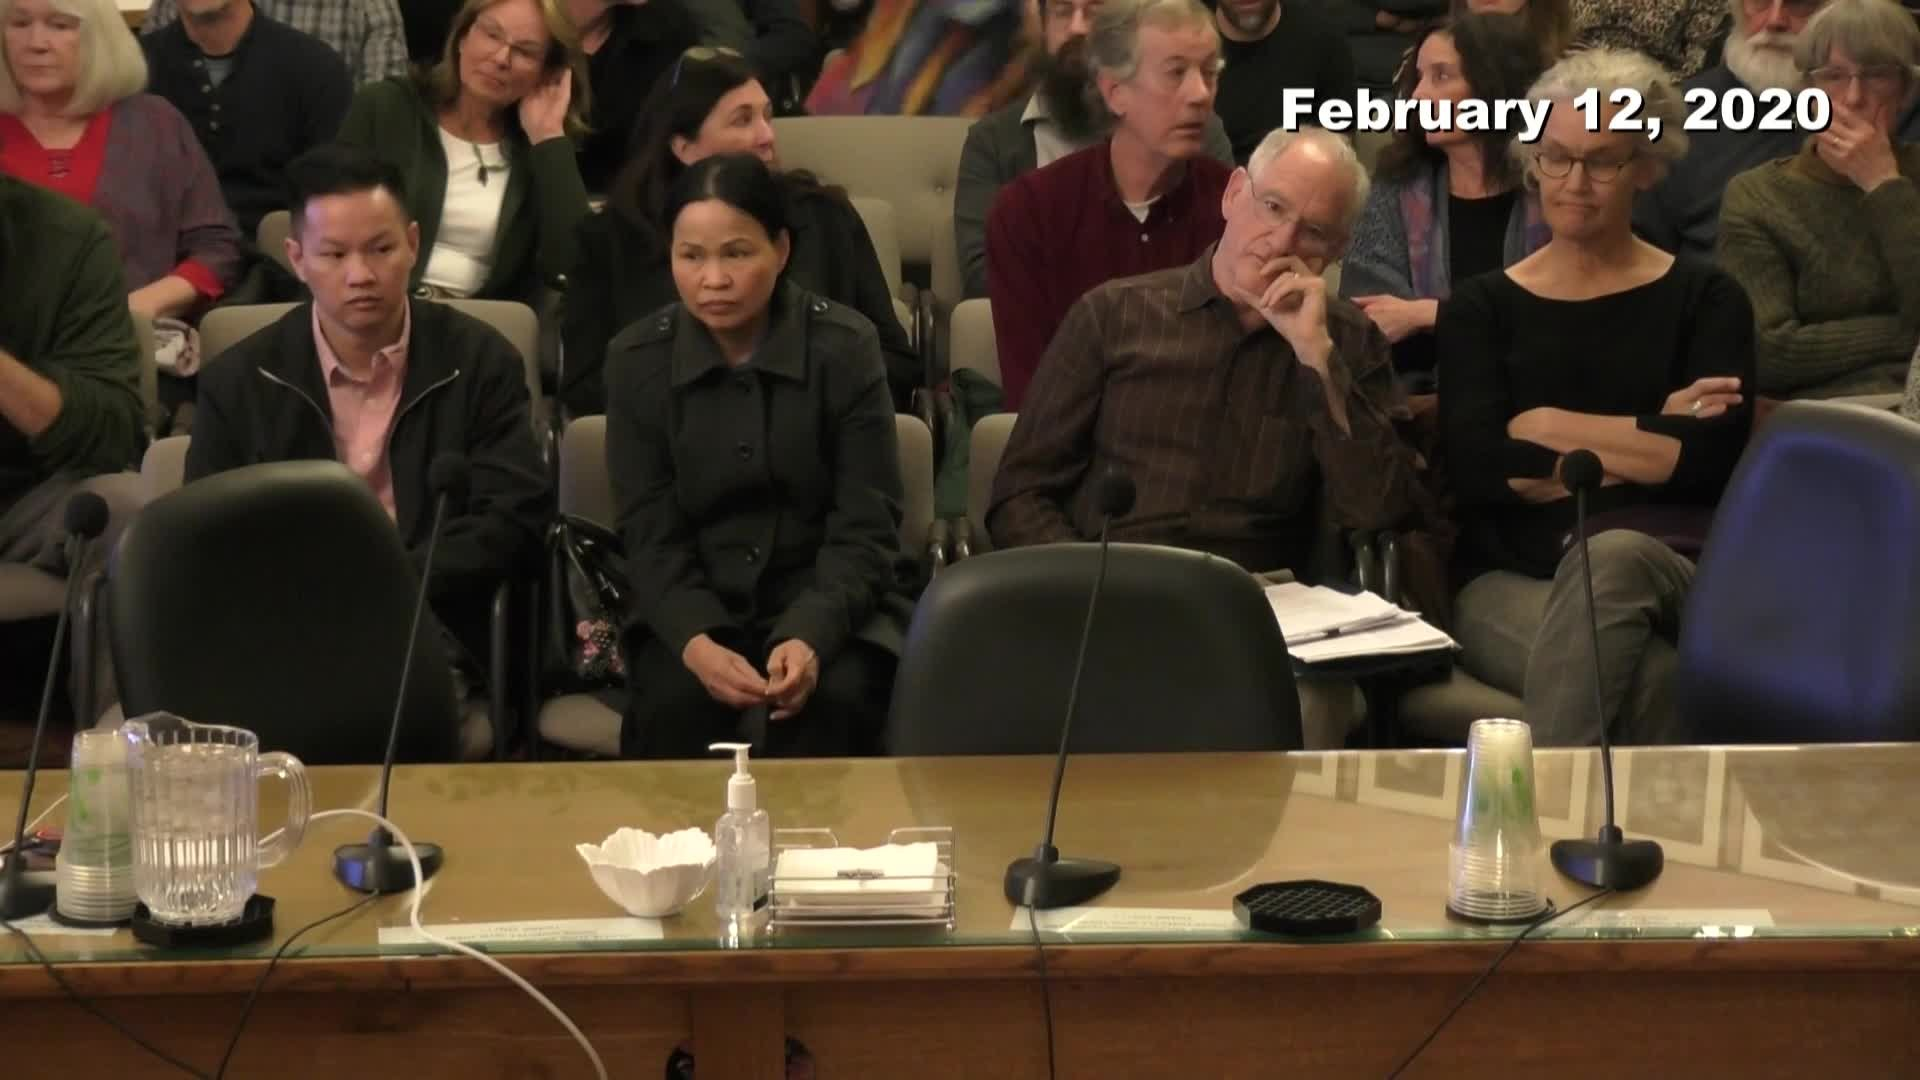 Planning Commission Meeting - 02/12/2020